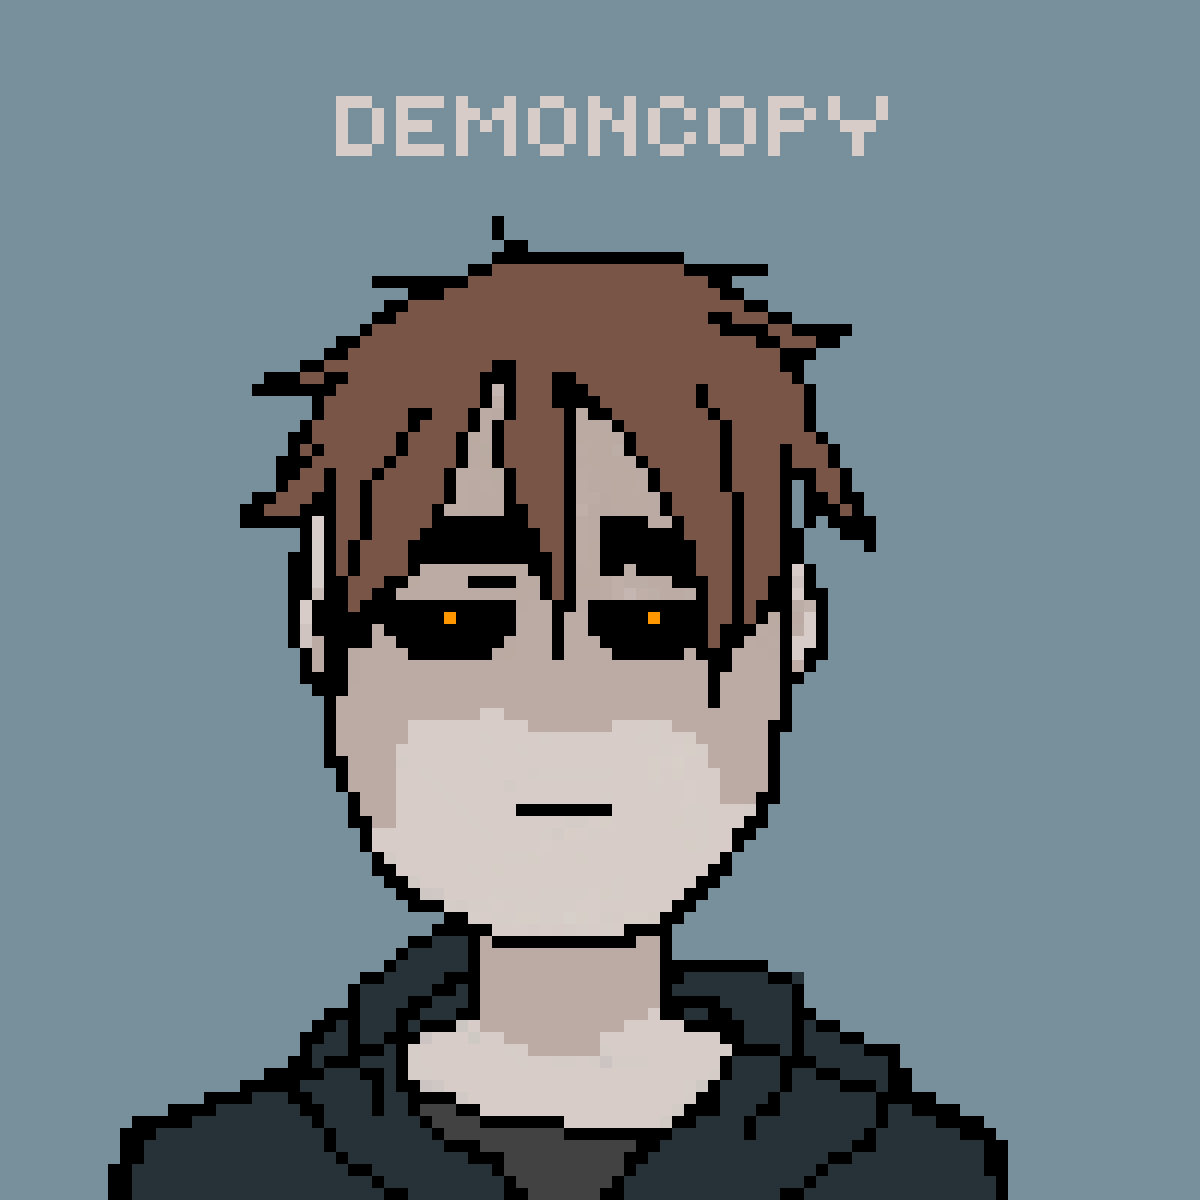 Perfil by DemonCopy